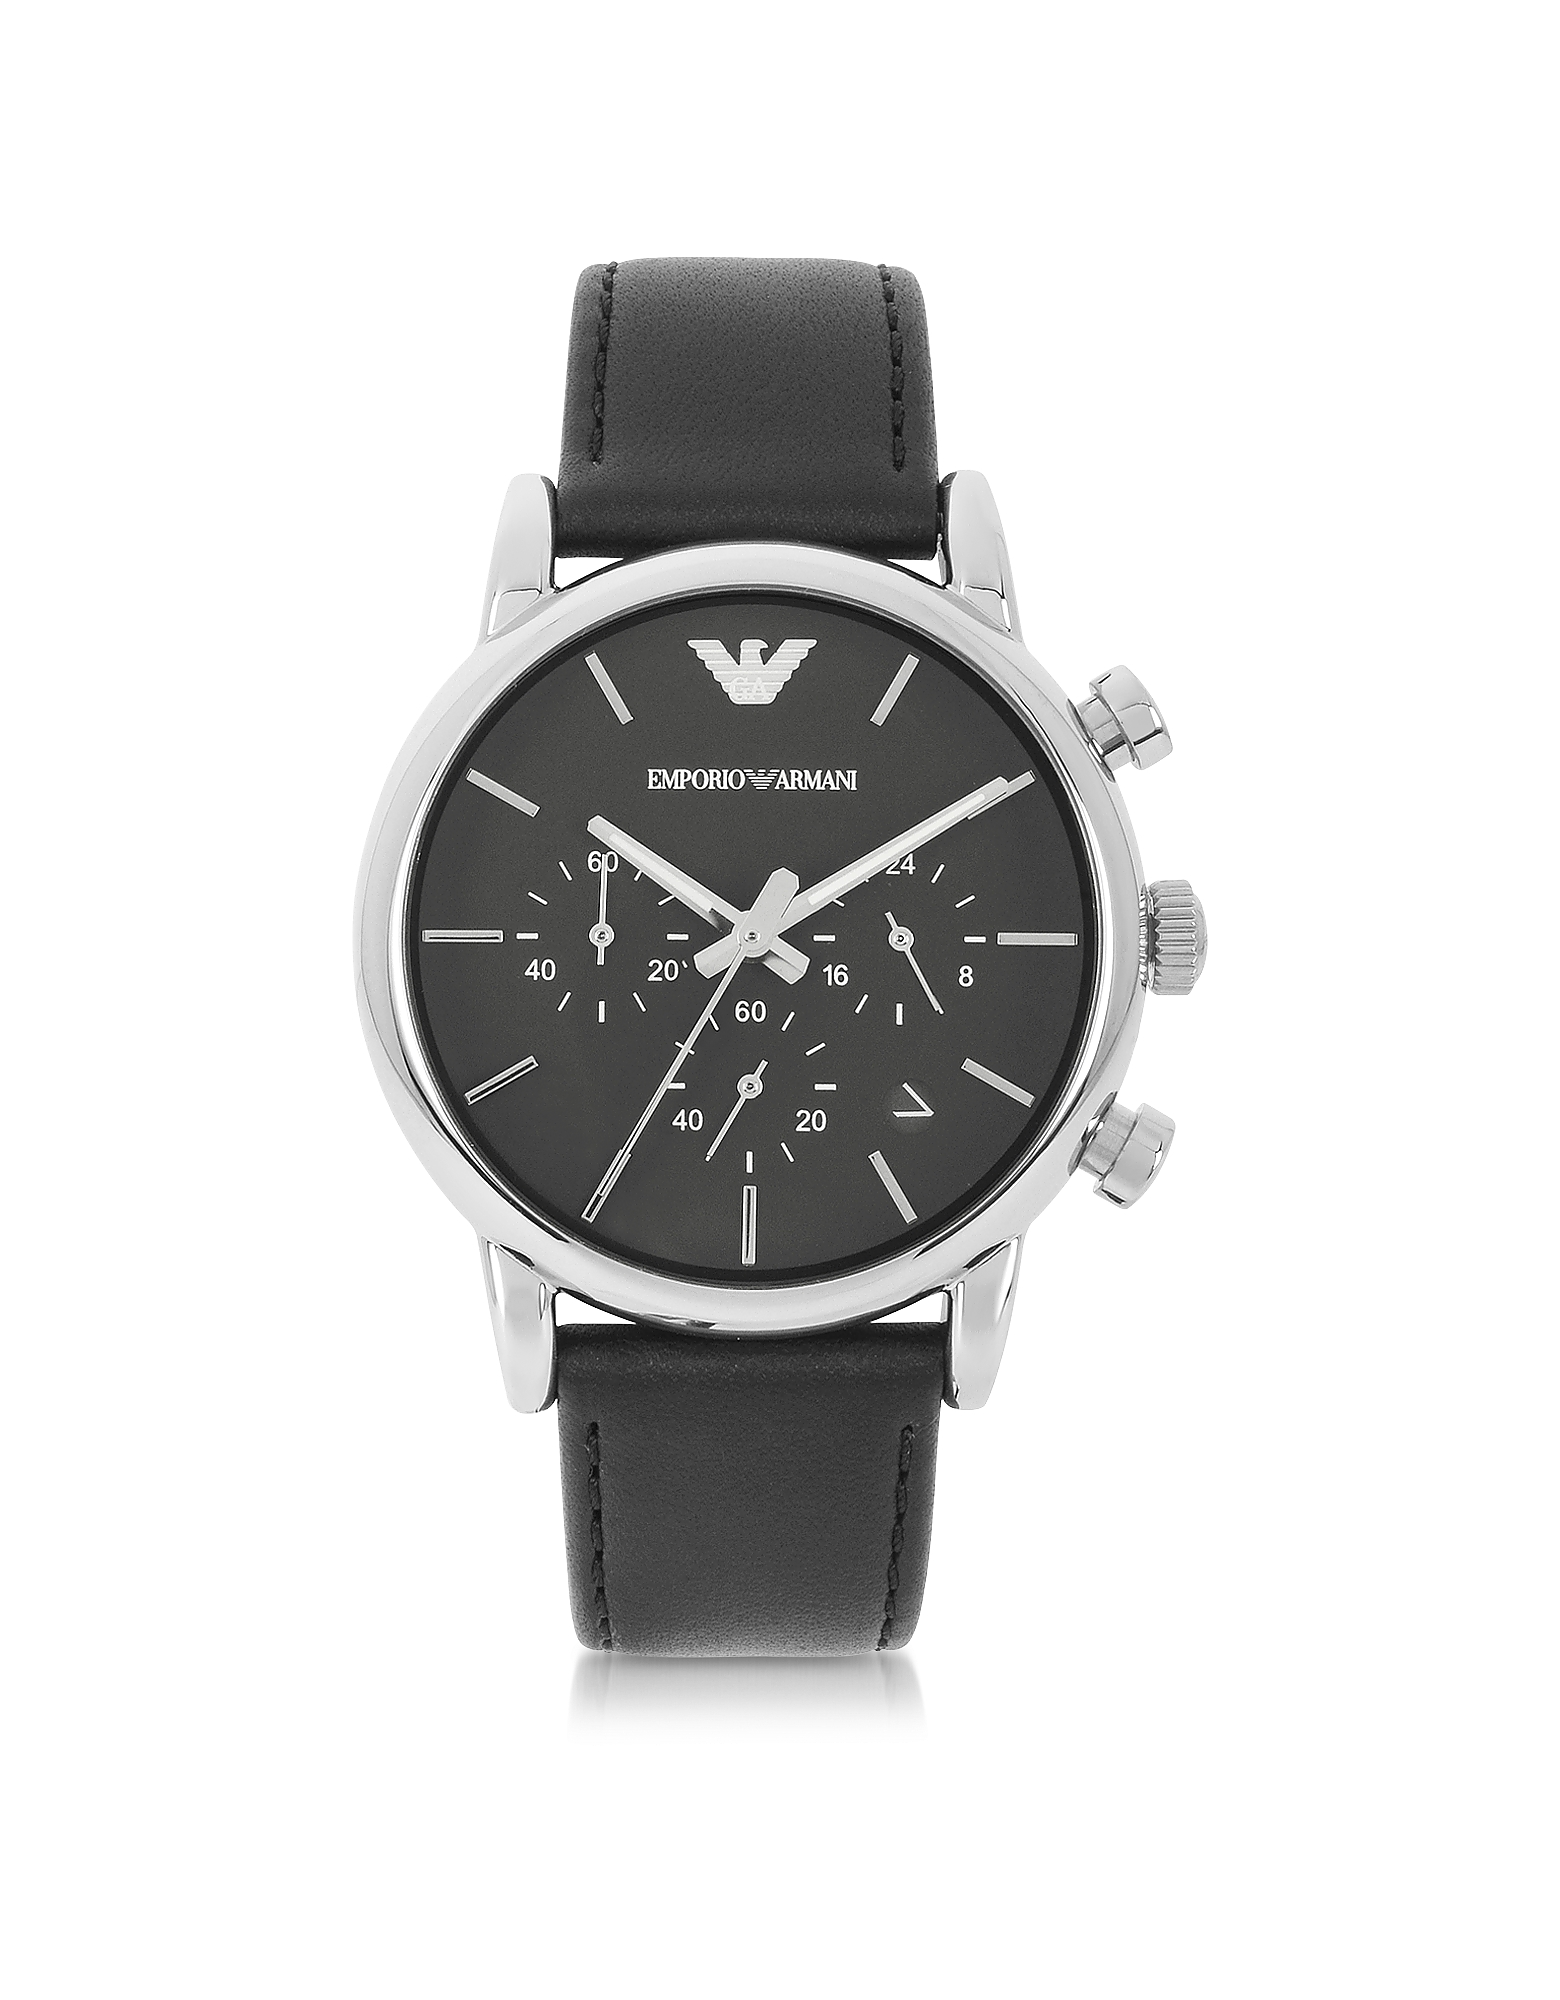 Emporio Armani Men's Watches, Chronograph Men's Watch